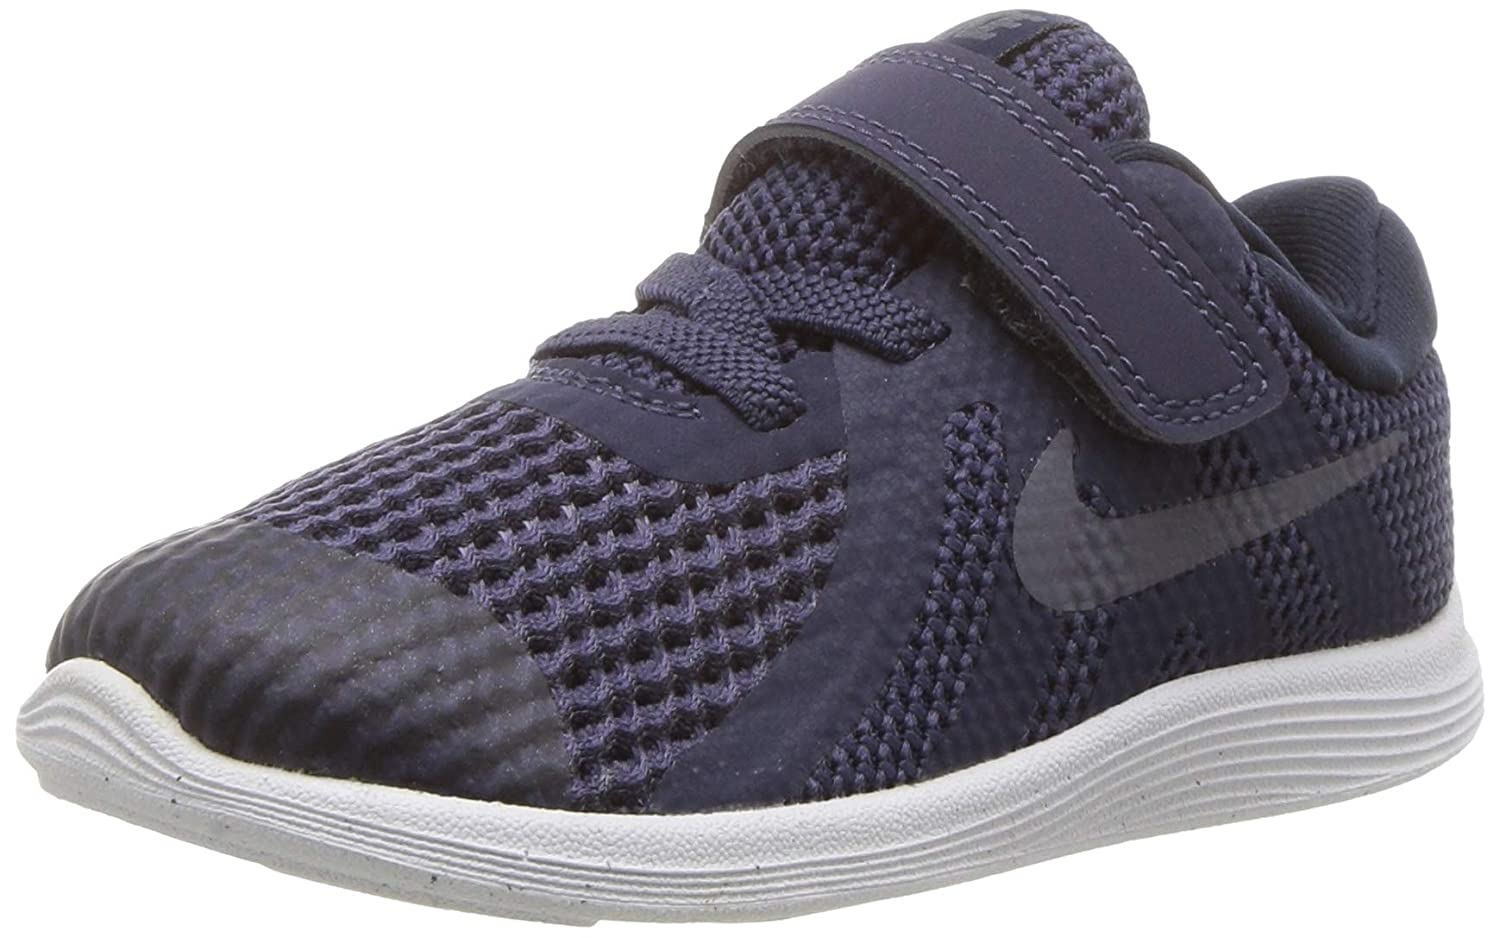 6659ae8008 Amazon.com | Nike Boys' Revolution 4 (TDV) Running Shoe, Neutral  Indigo/Light Carbon - Obsidian, 5C Regular US Toddler | Shoes